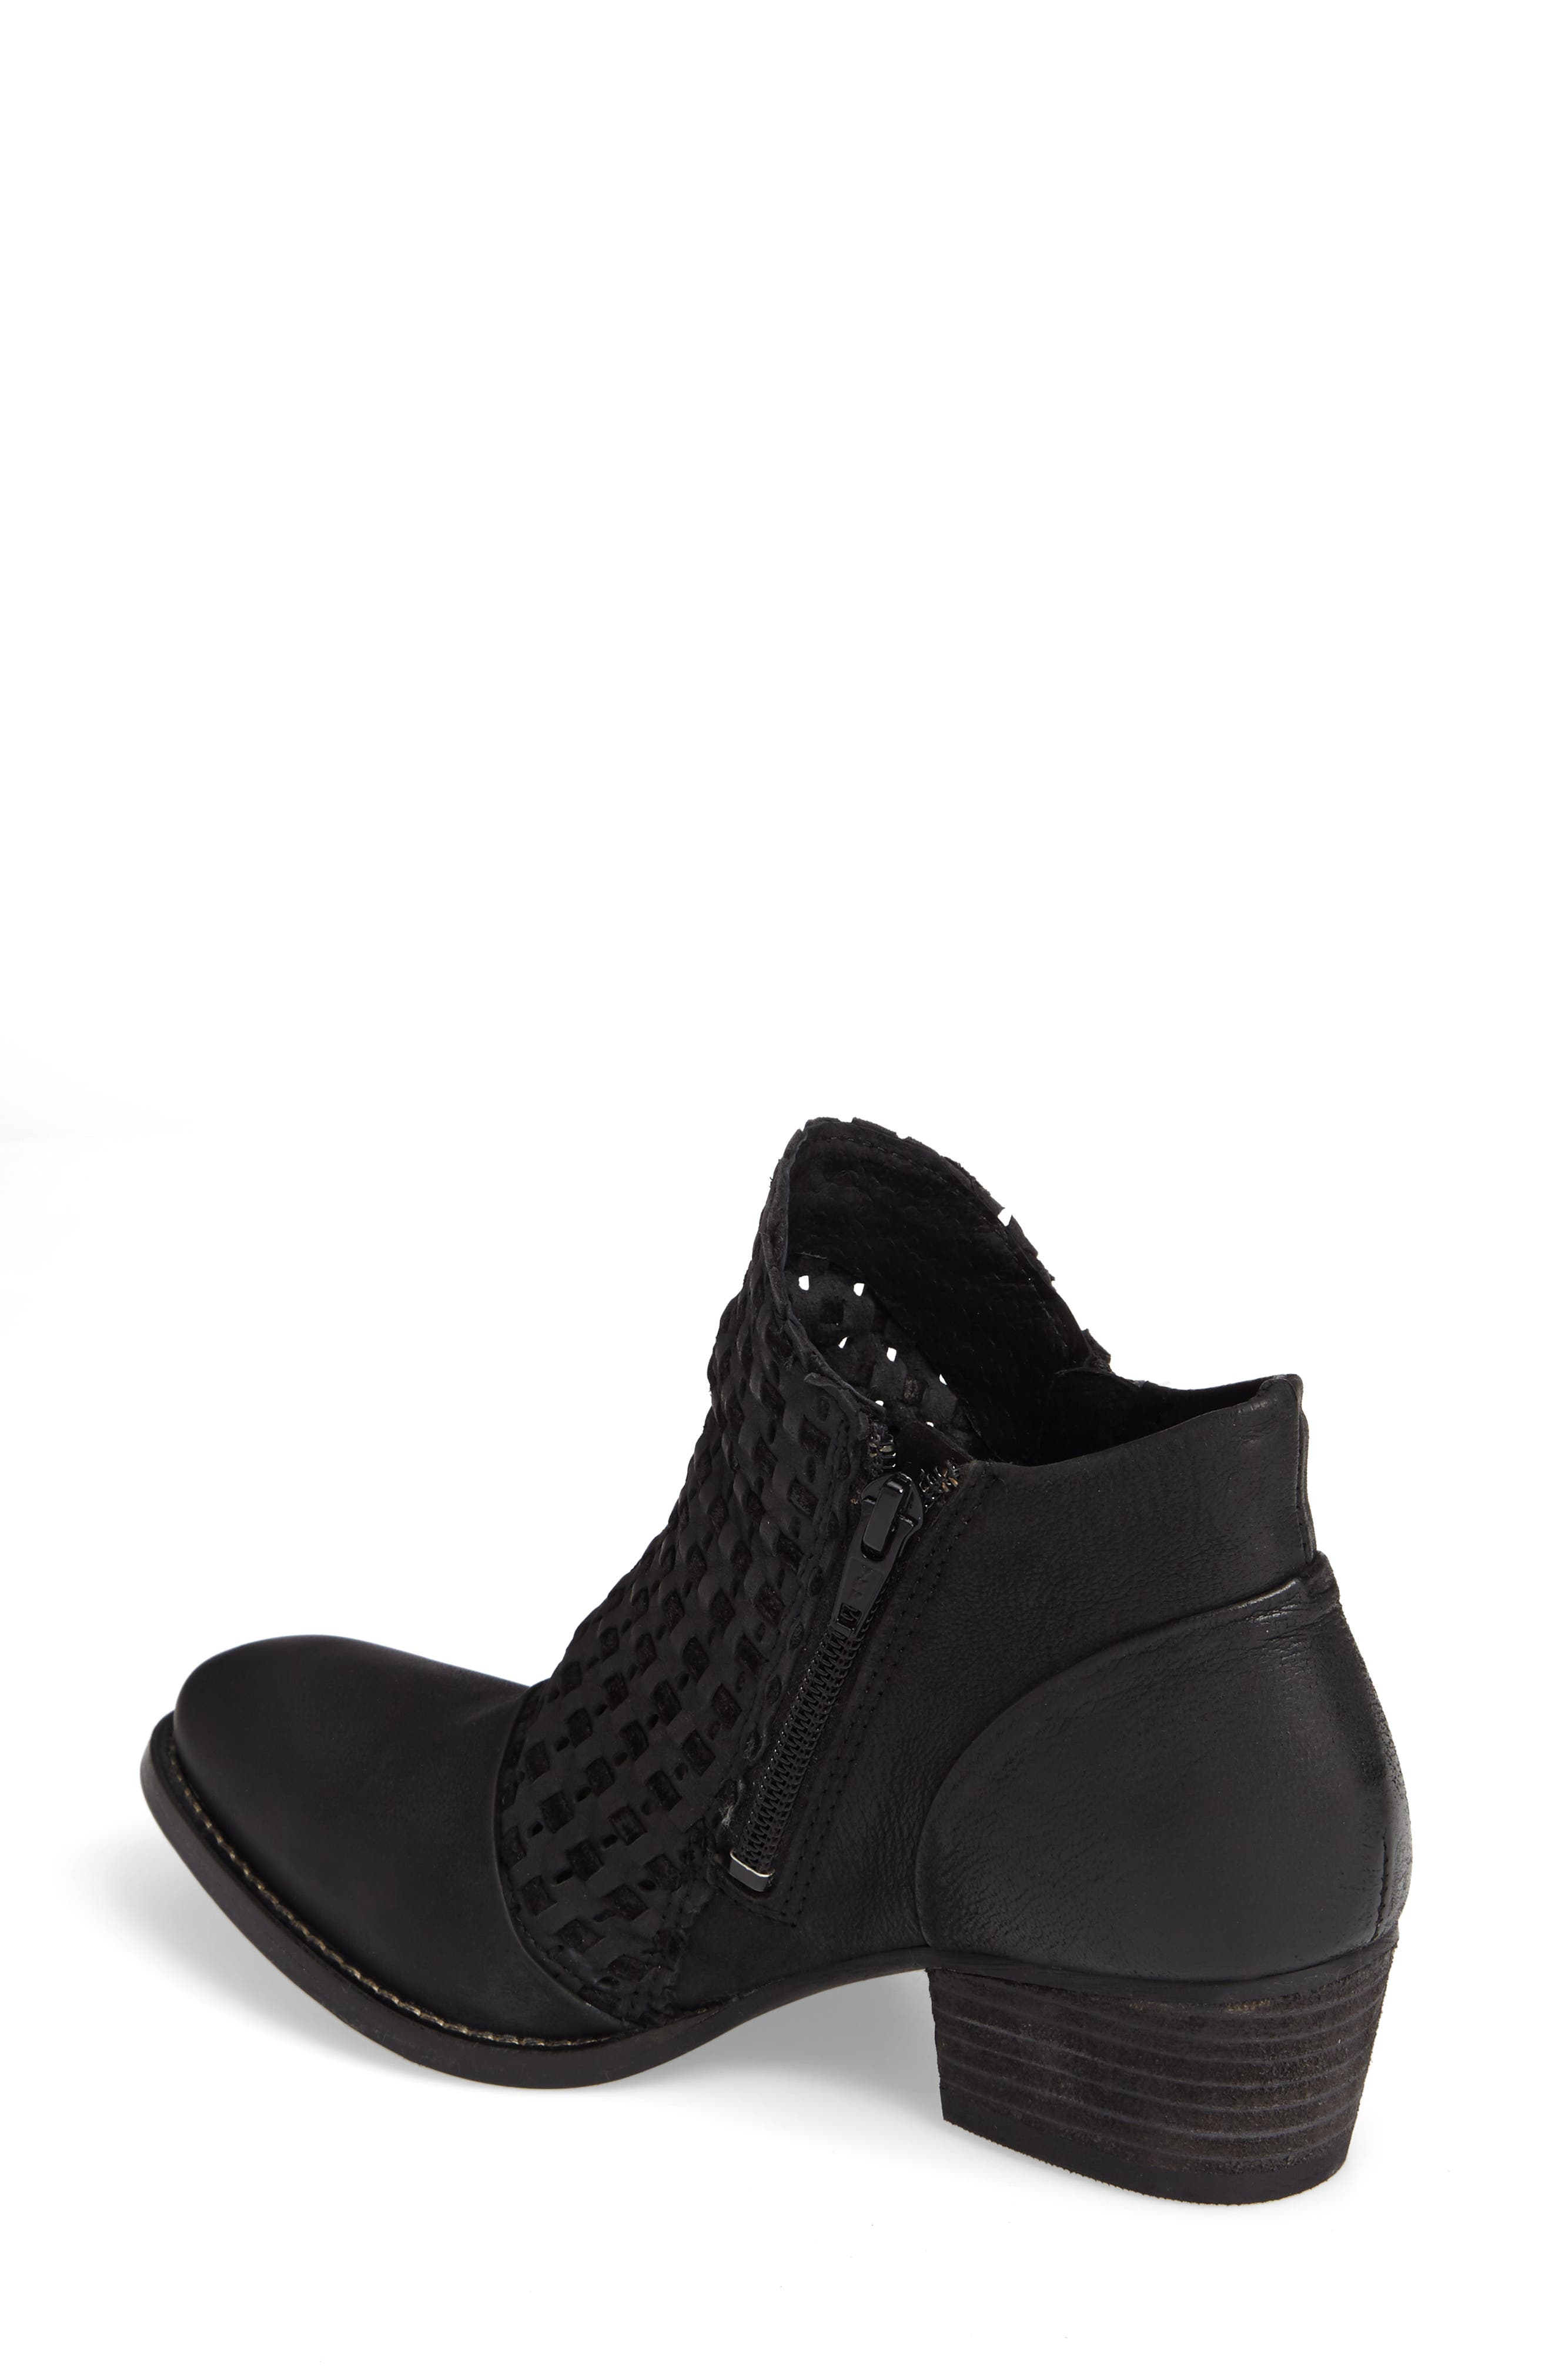 Ravi Perforated Woven Bootie,                             Alternate thumbnail 3, color,